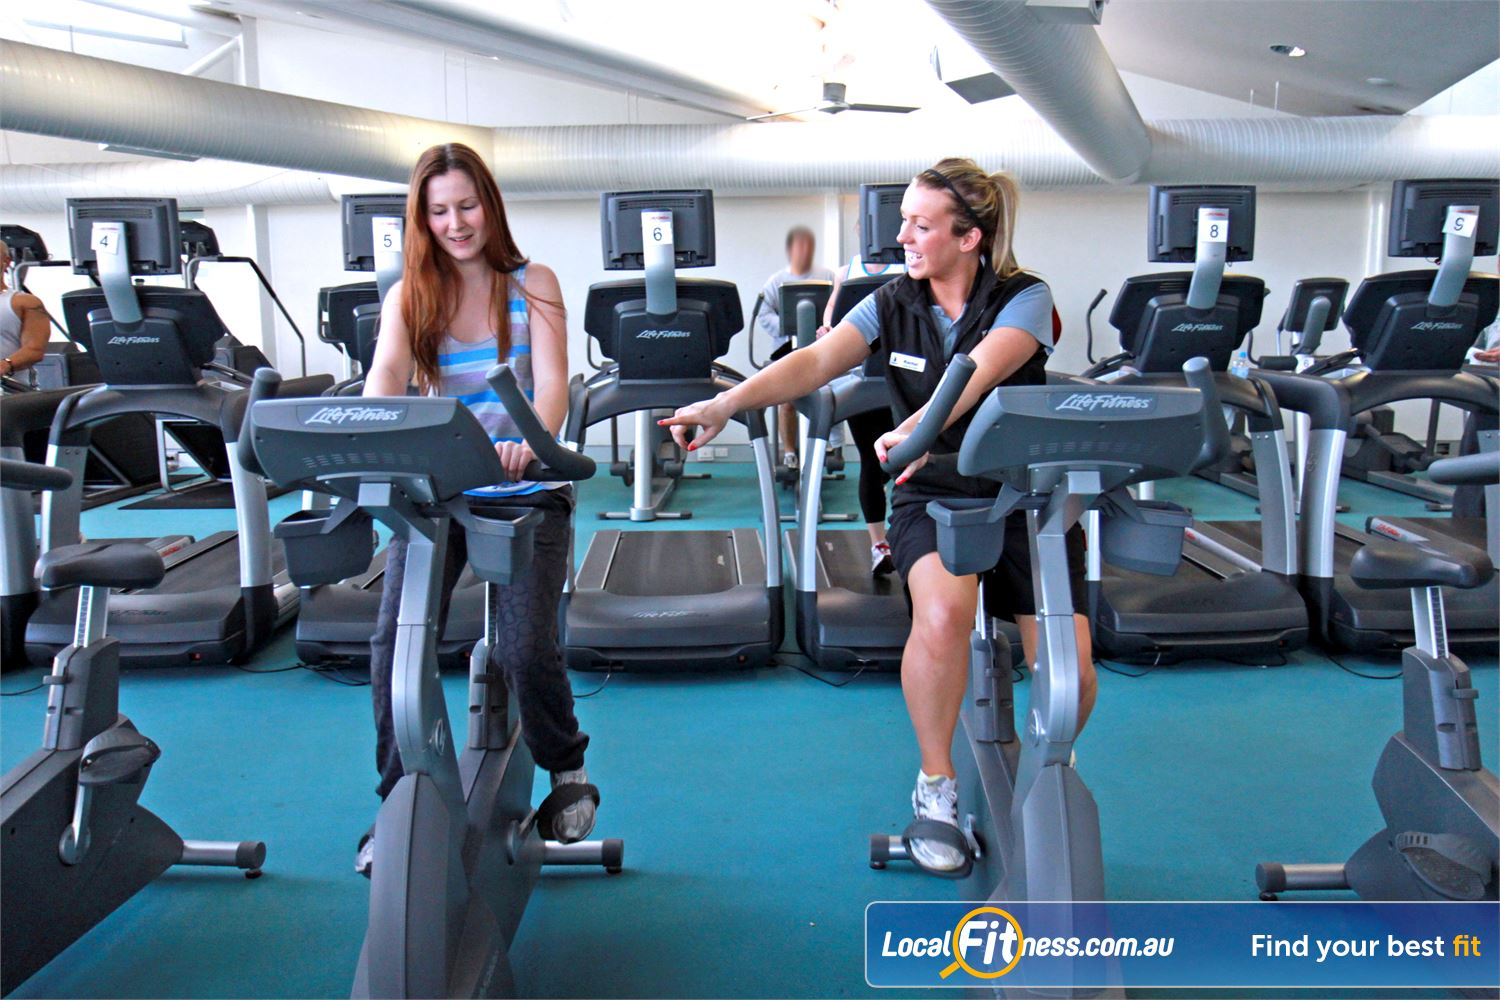 Ascot Vale Leisure Centre Near Aberfeldie Ascot Vale personal trainers provide a safe and enjoyable cardio experience.